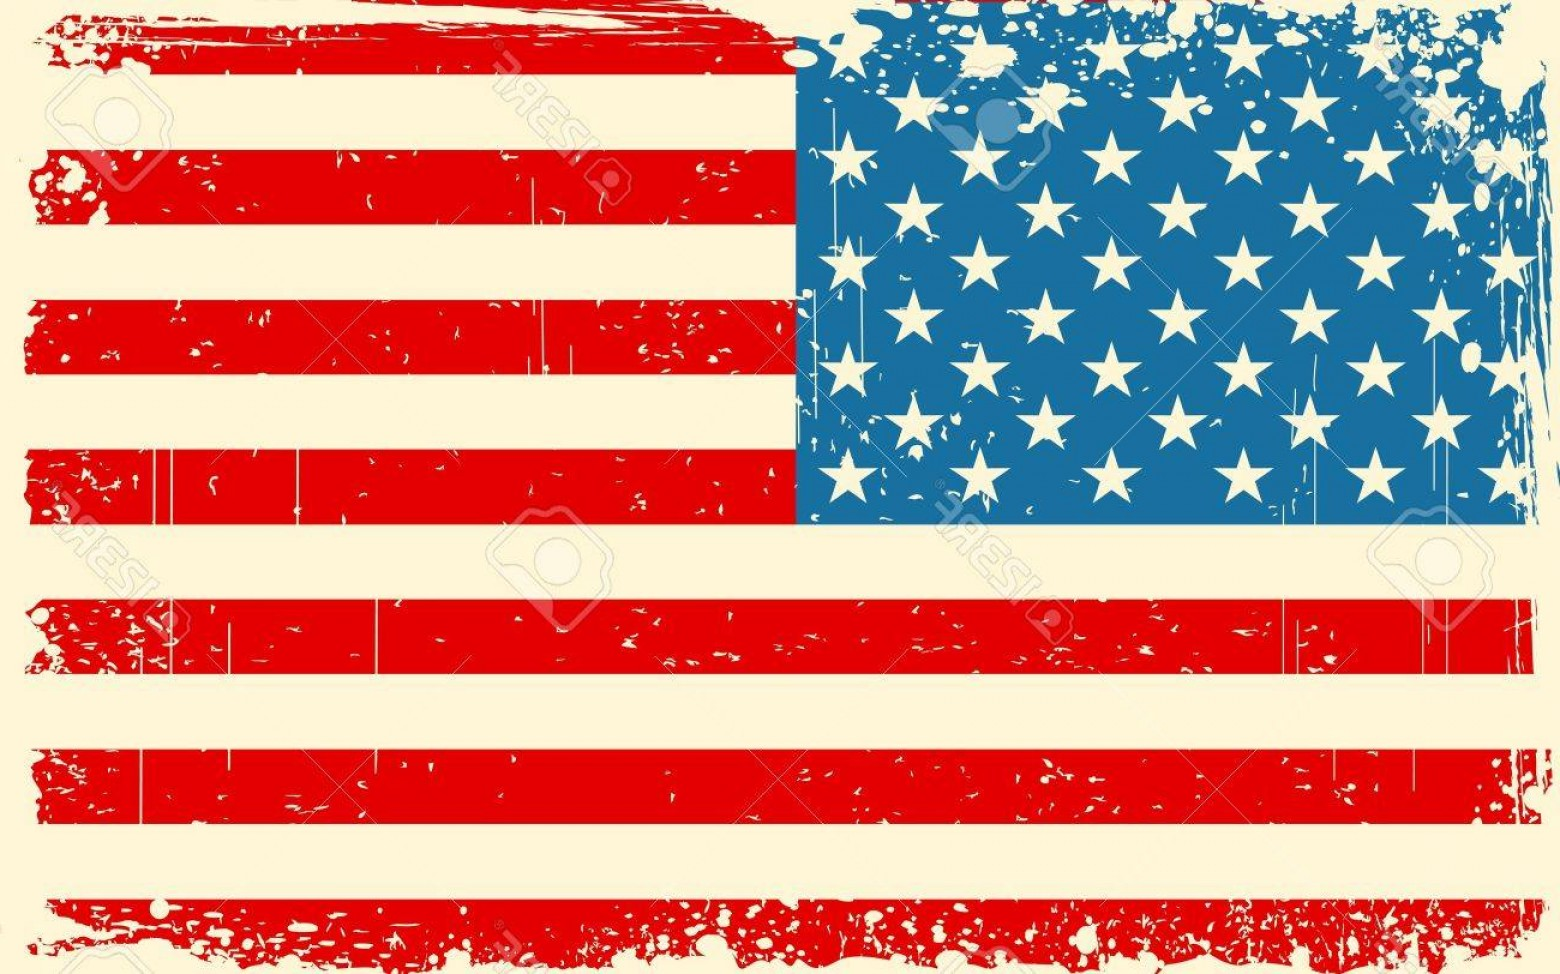 US Flag Vector Lines: Photoillustration Of American Flag With Grungy Border In Retro Color